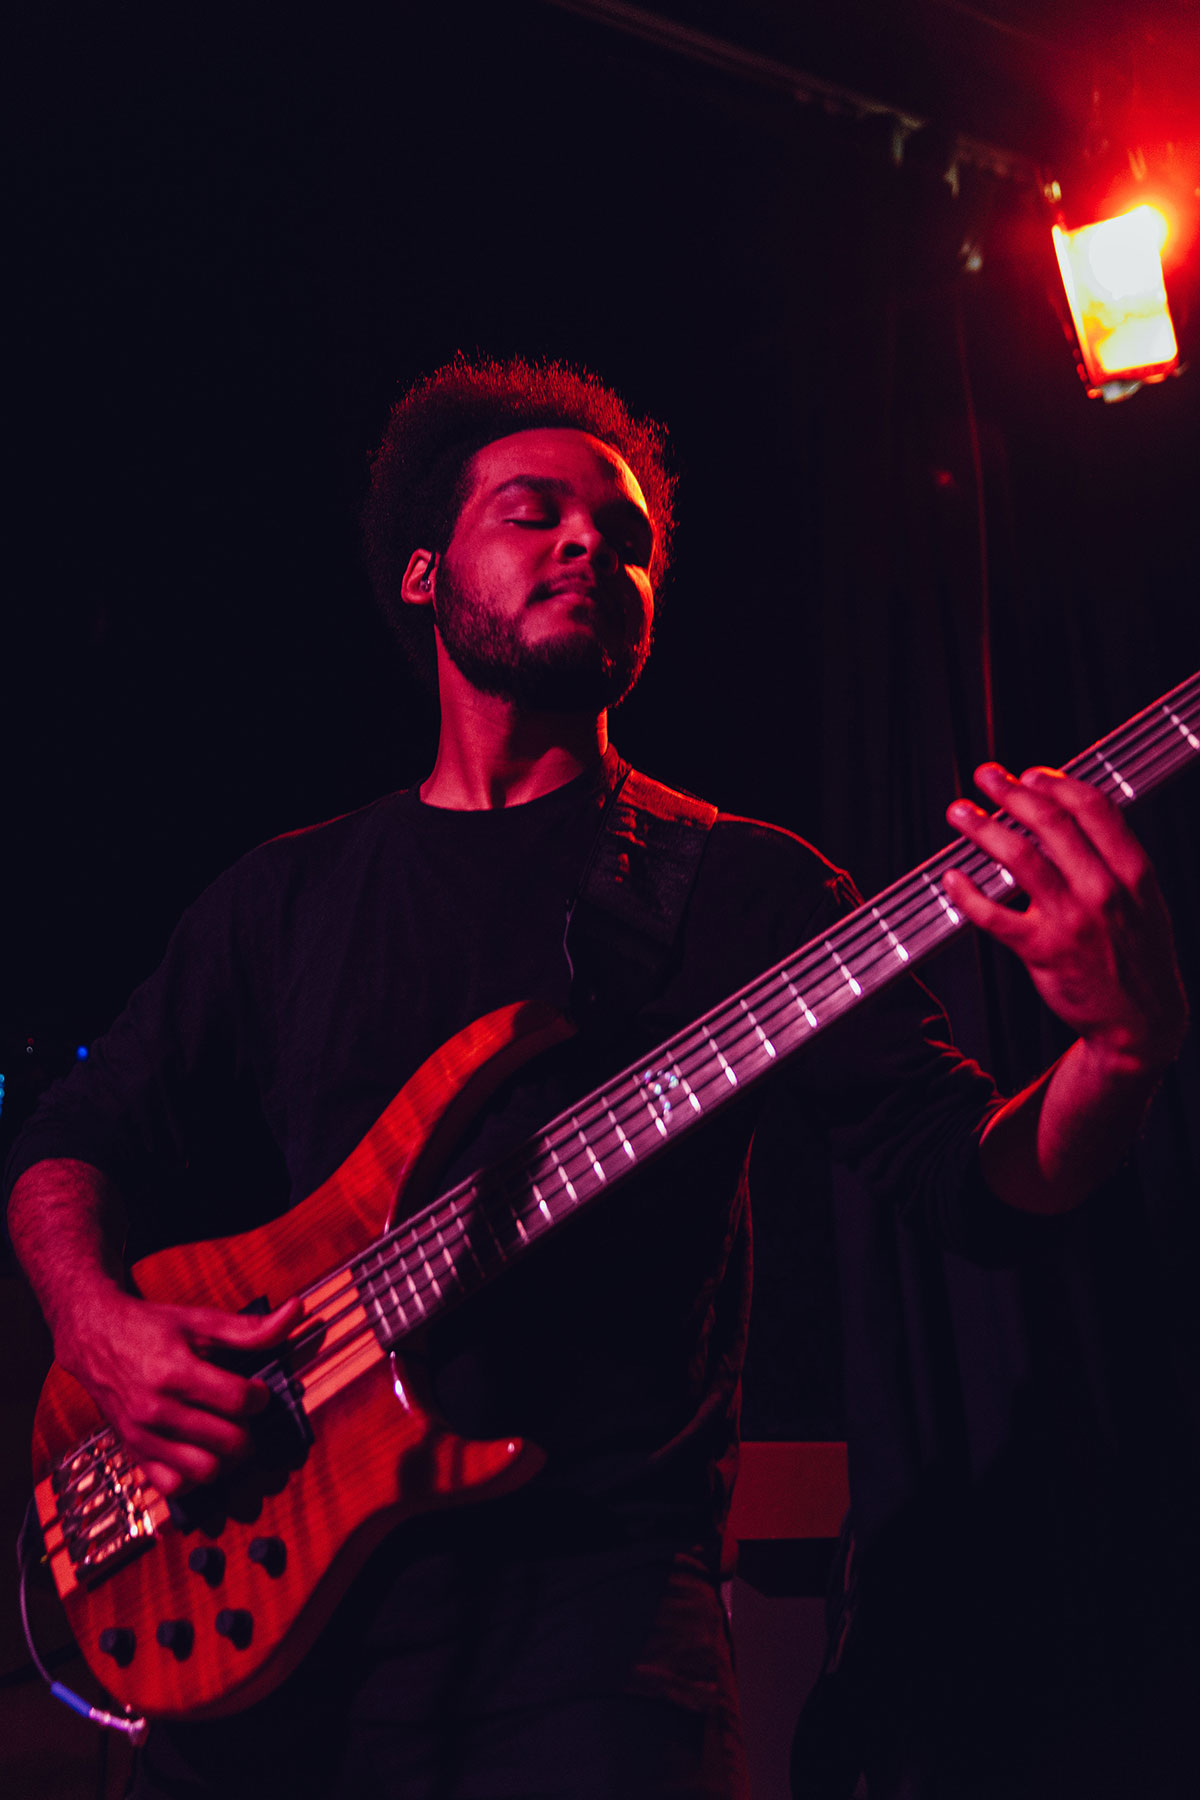 Entheos-on-Audiotree-Live-17.jpg